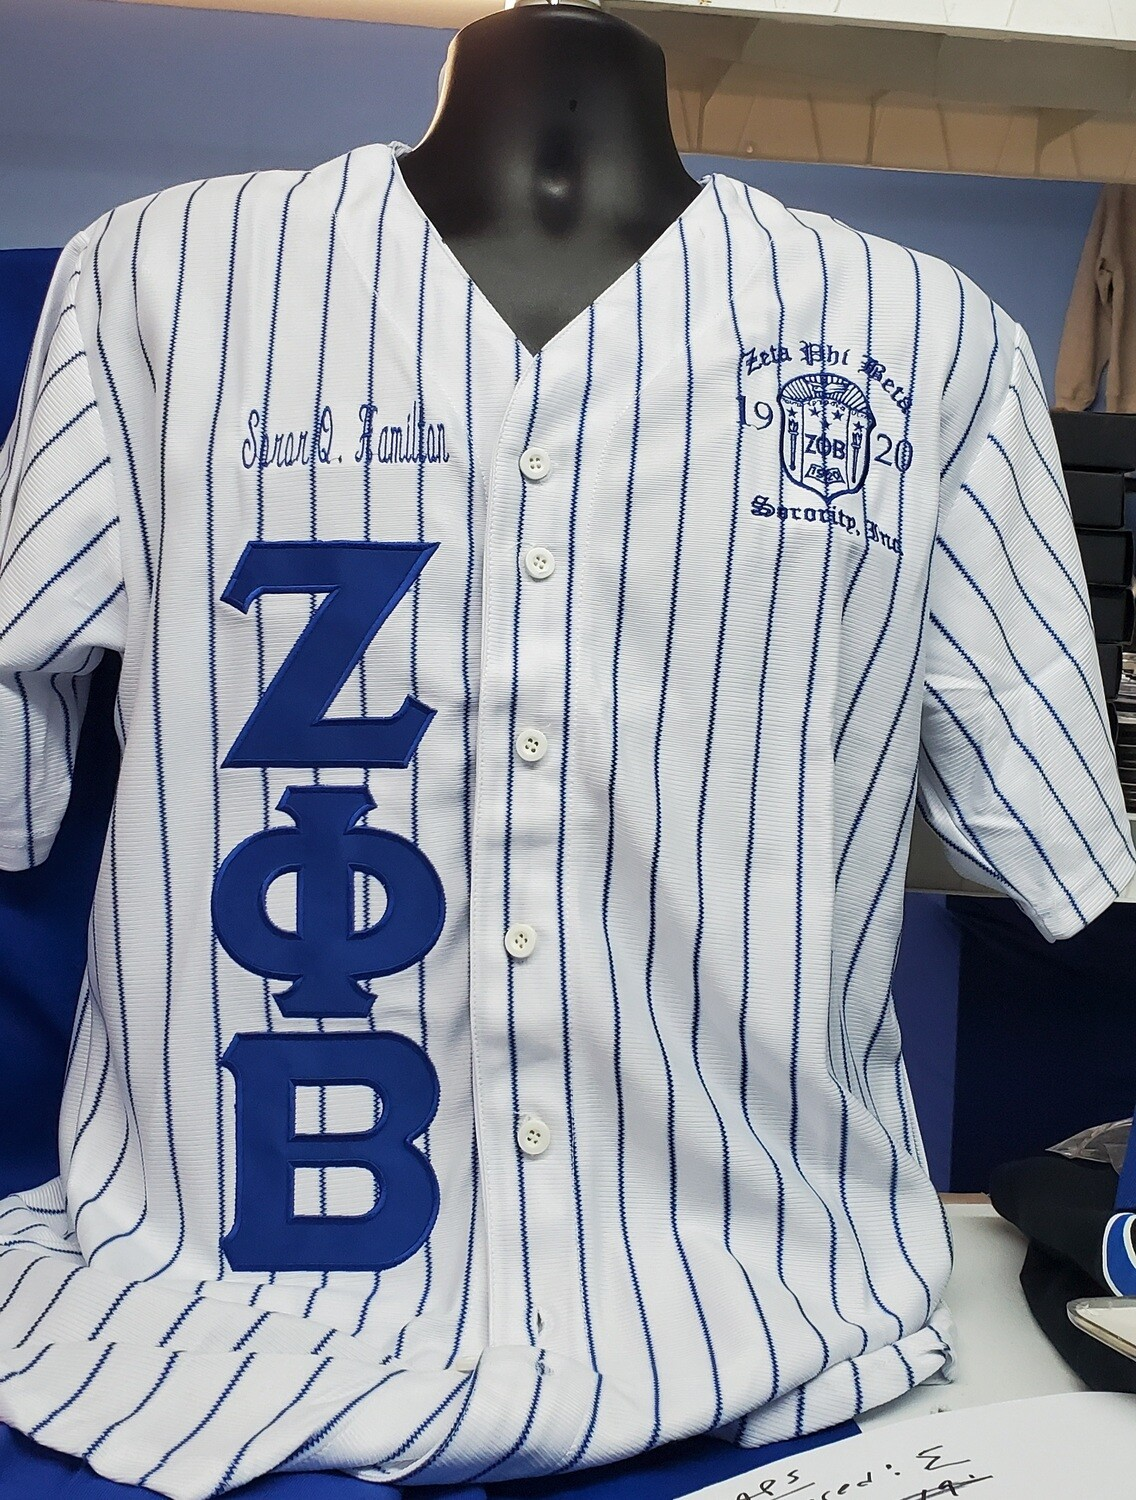 Personalized Name - Zeta Phi Beta Baseball Jersey